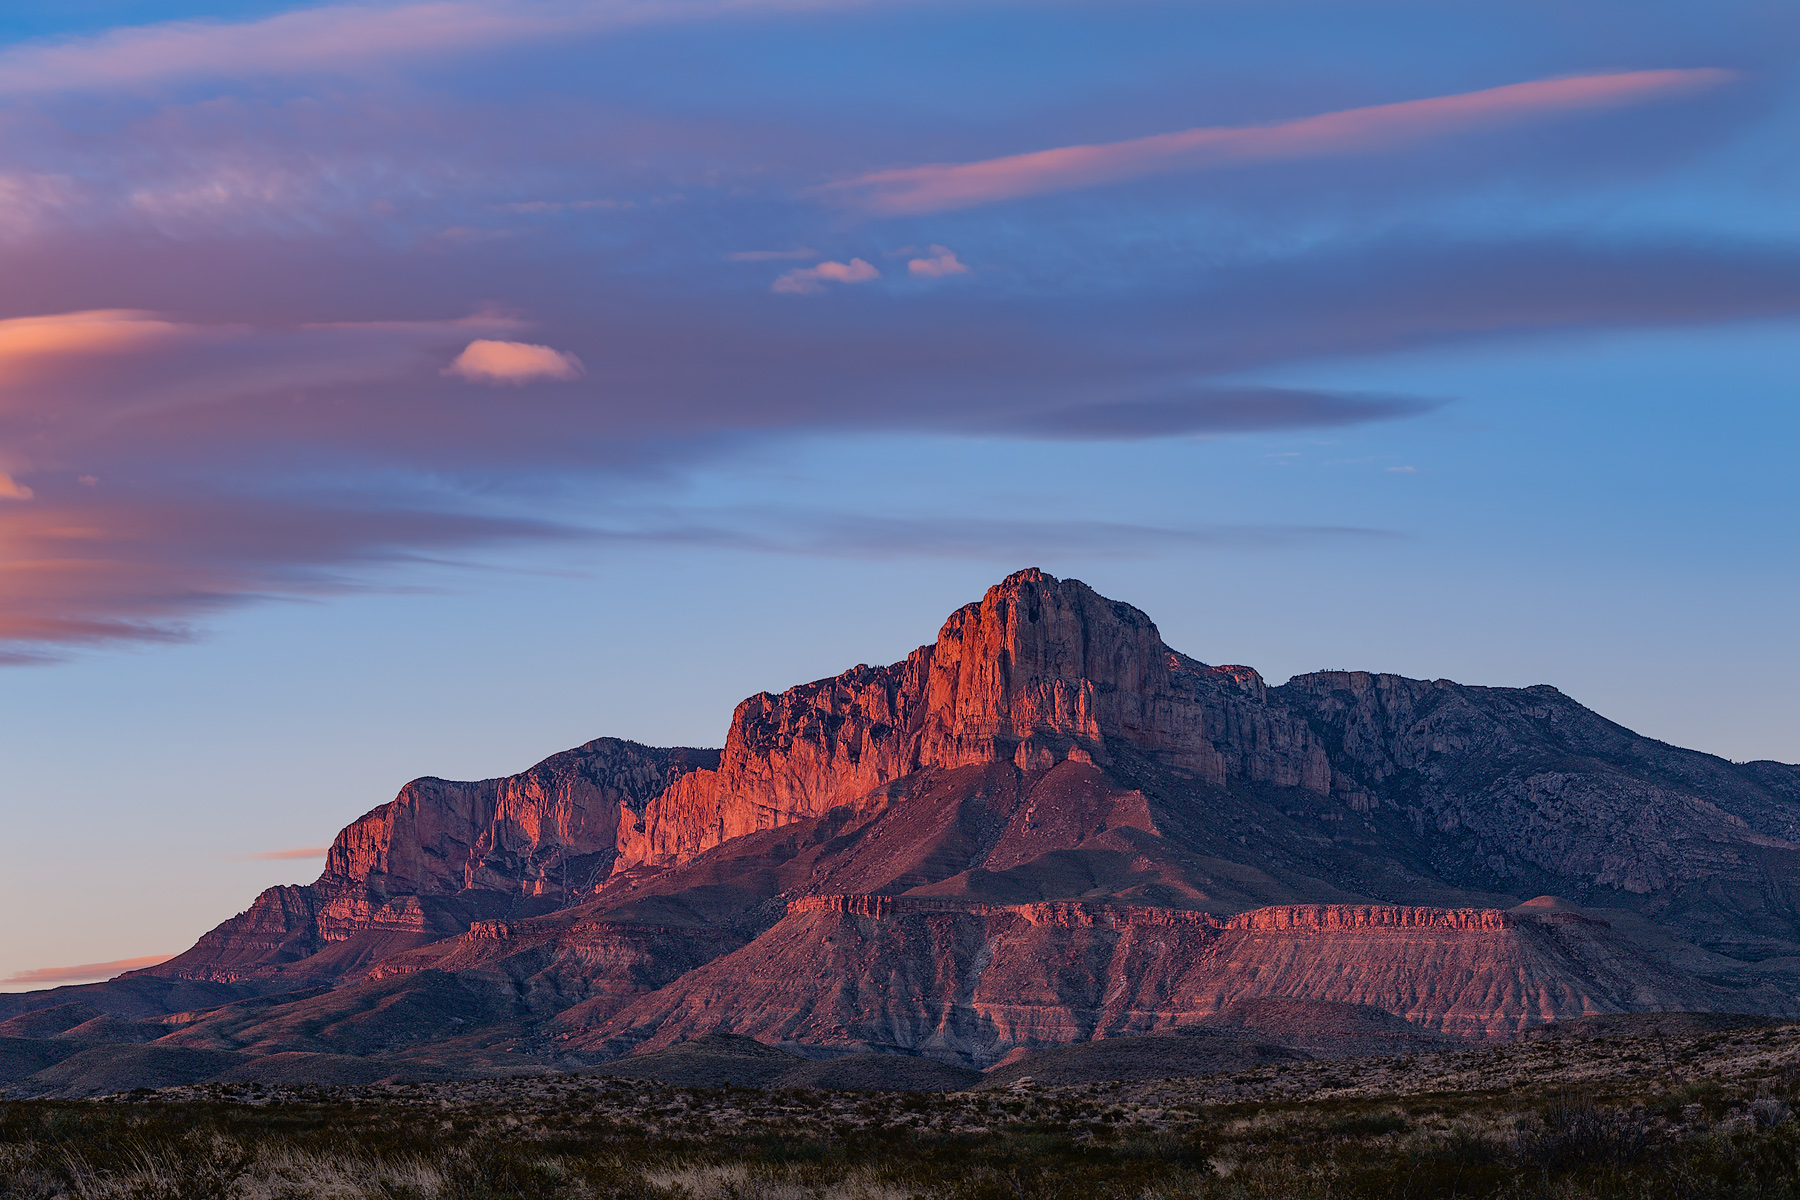 Guadalupe Mountains National Pa, Texas, West Texas, National Park Service, NPS, Culberson County, Chihuahua Desert, Chihuahuan Desert, Williams Ranch, Williams Ranch Road, sunset, daylight, landscape,, photo